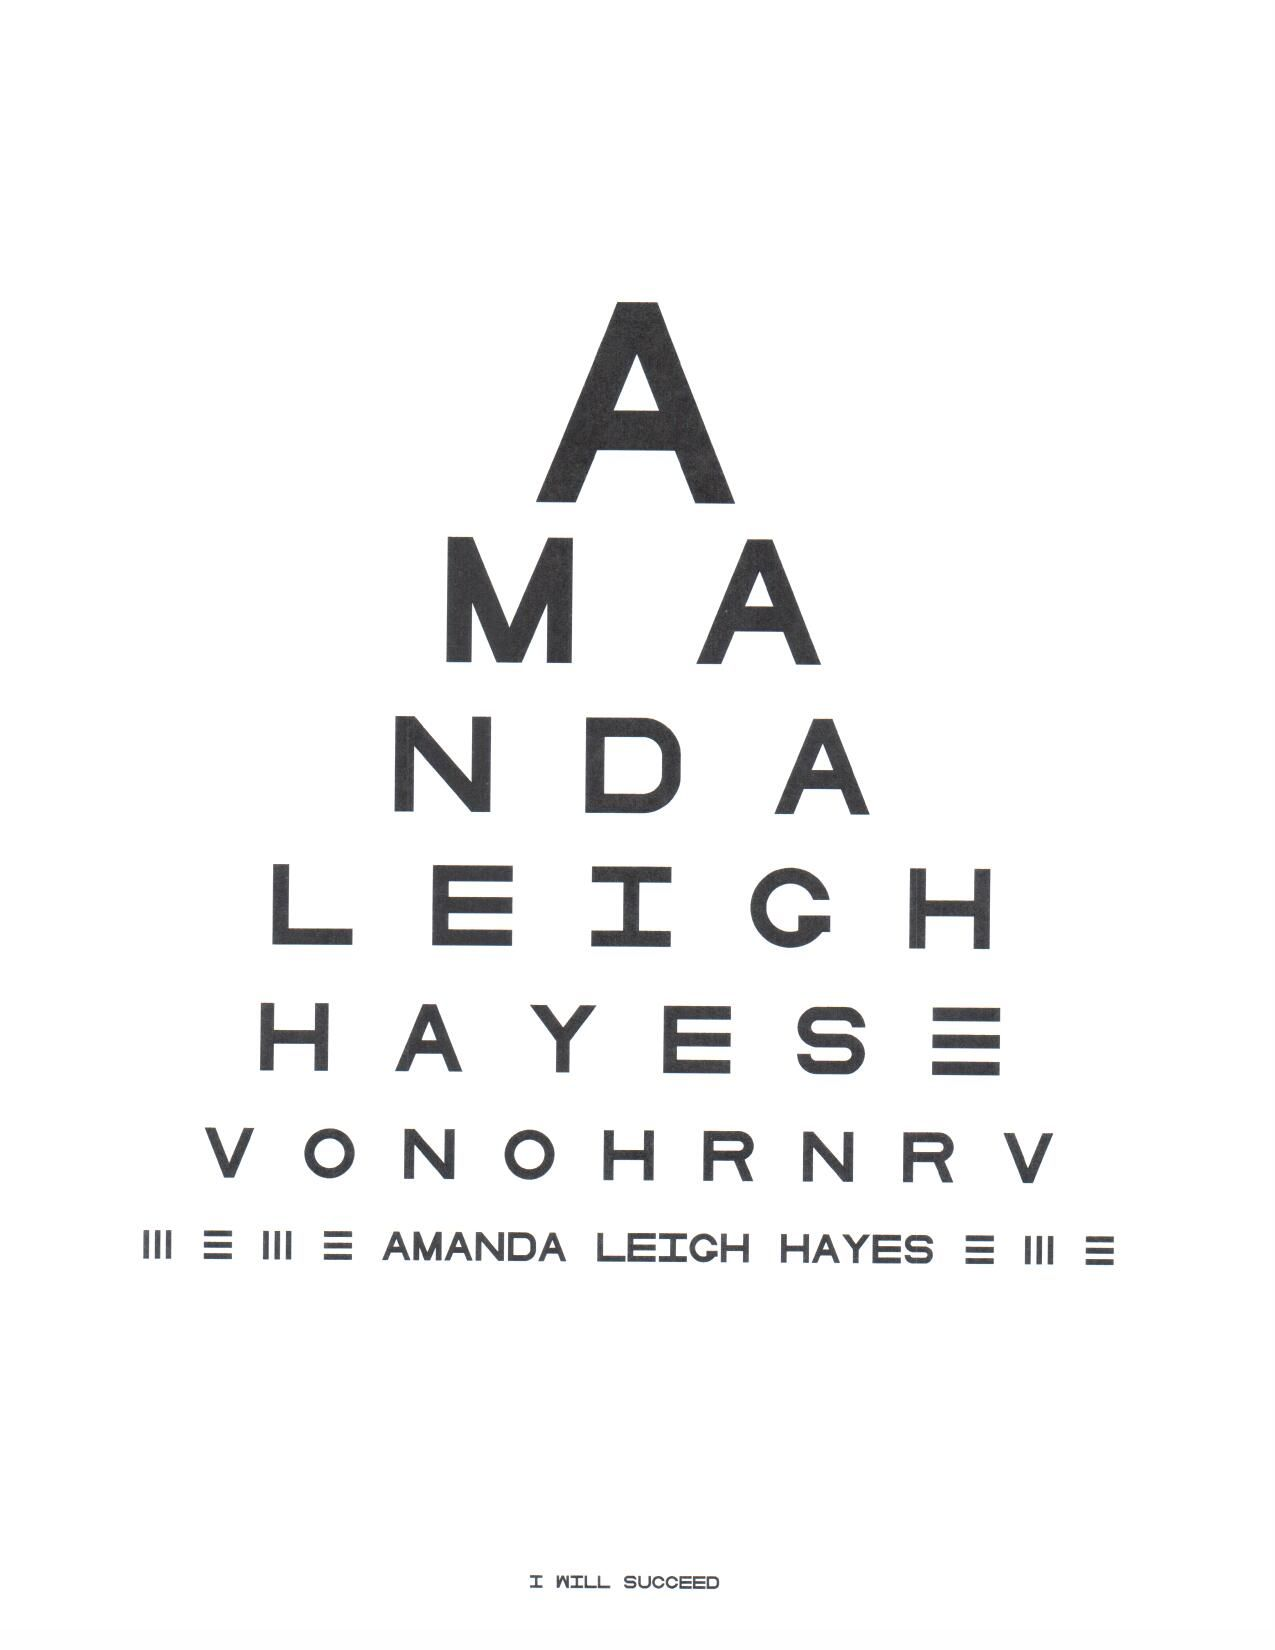 Name Or Phrase In The Form Of An Eye Chart For 4